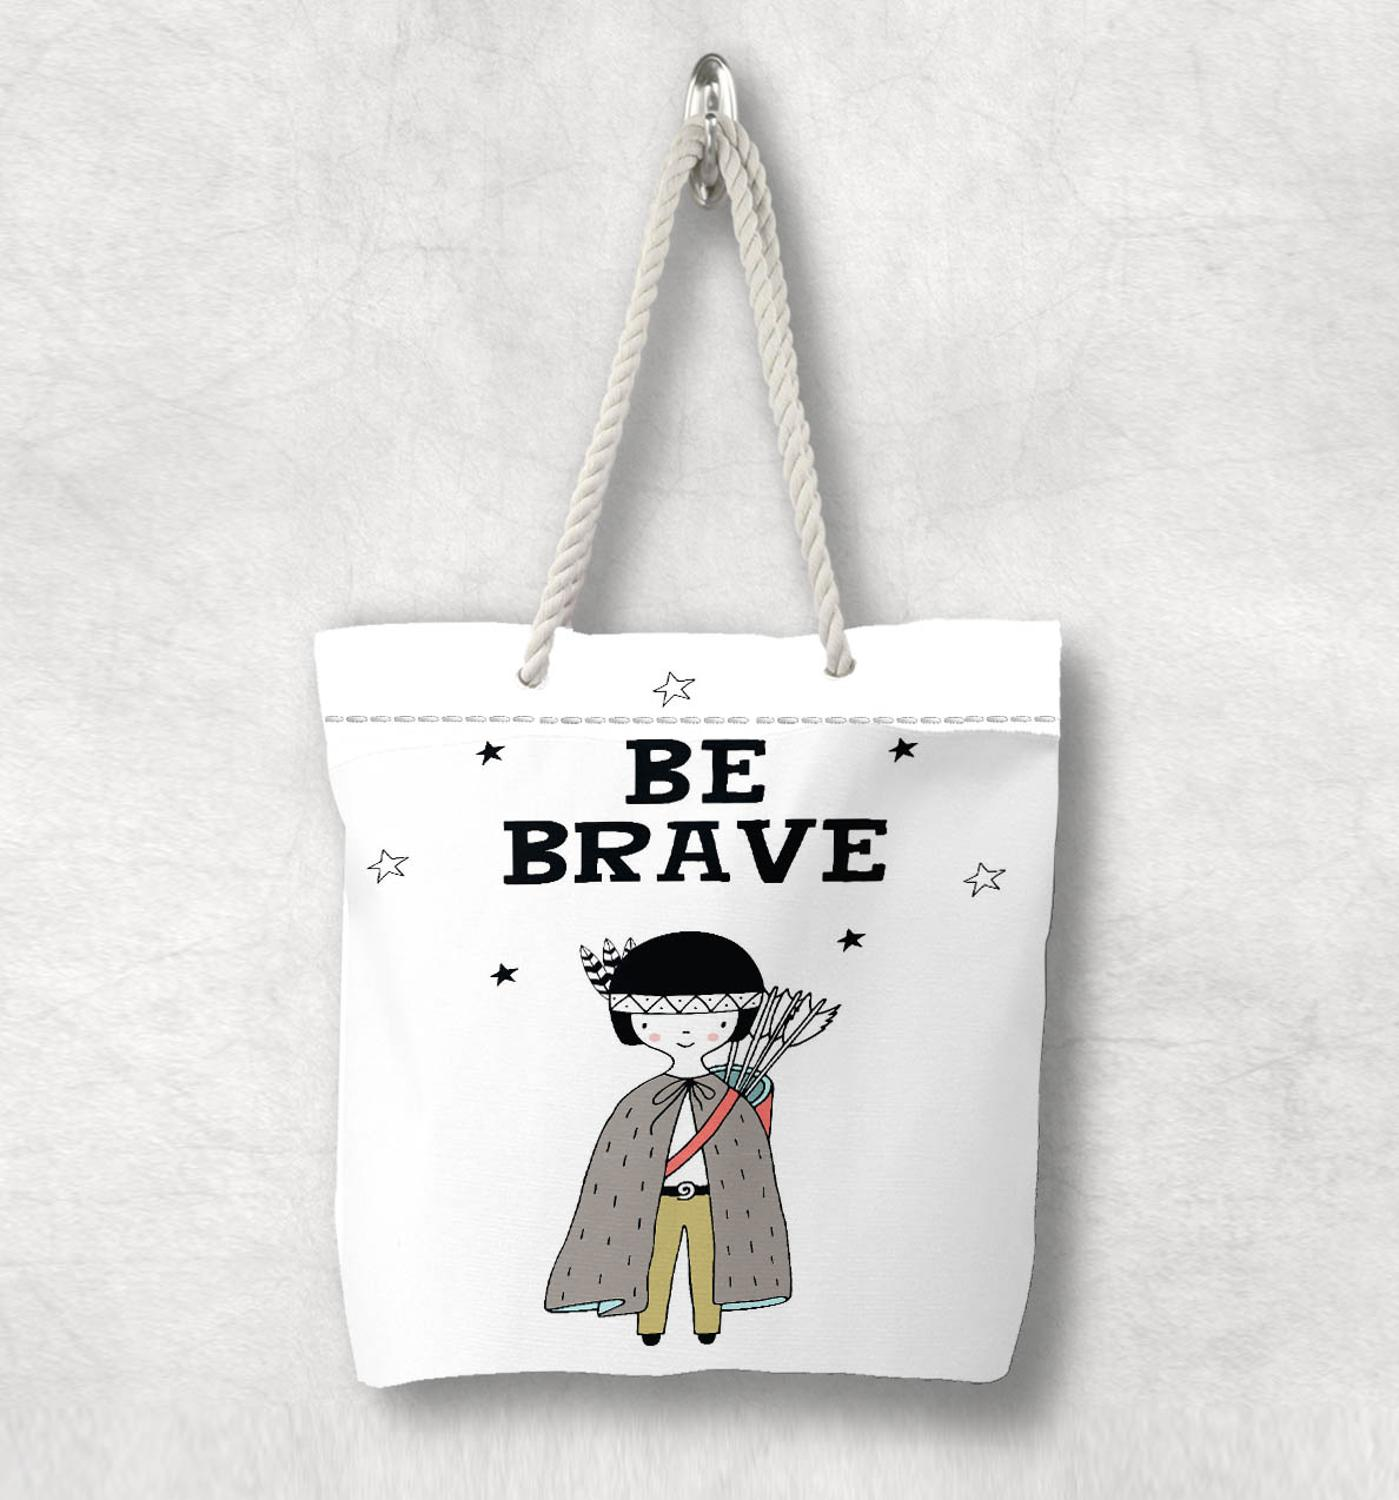 Else Bohemian Be Brave Boy Prince Nordic Scandinavian White Rope Handle Canvas Bag  Cartoon Print Zippered Tote Bag Shoulder Bag